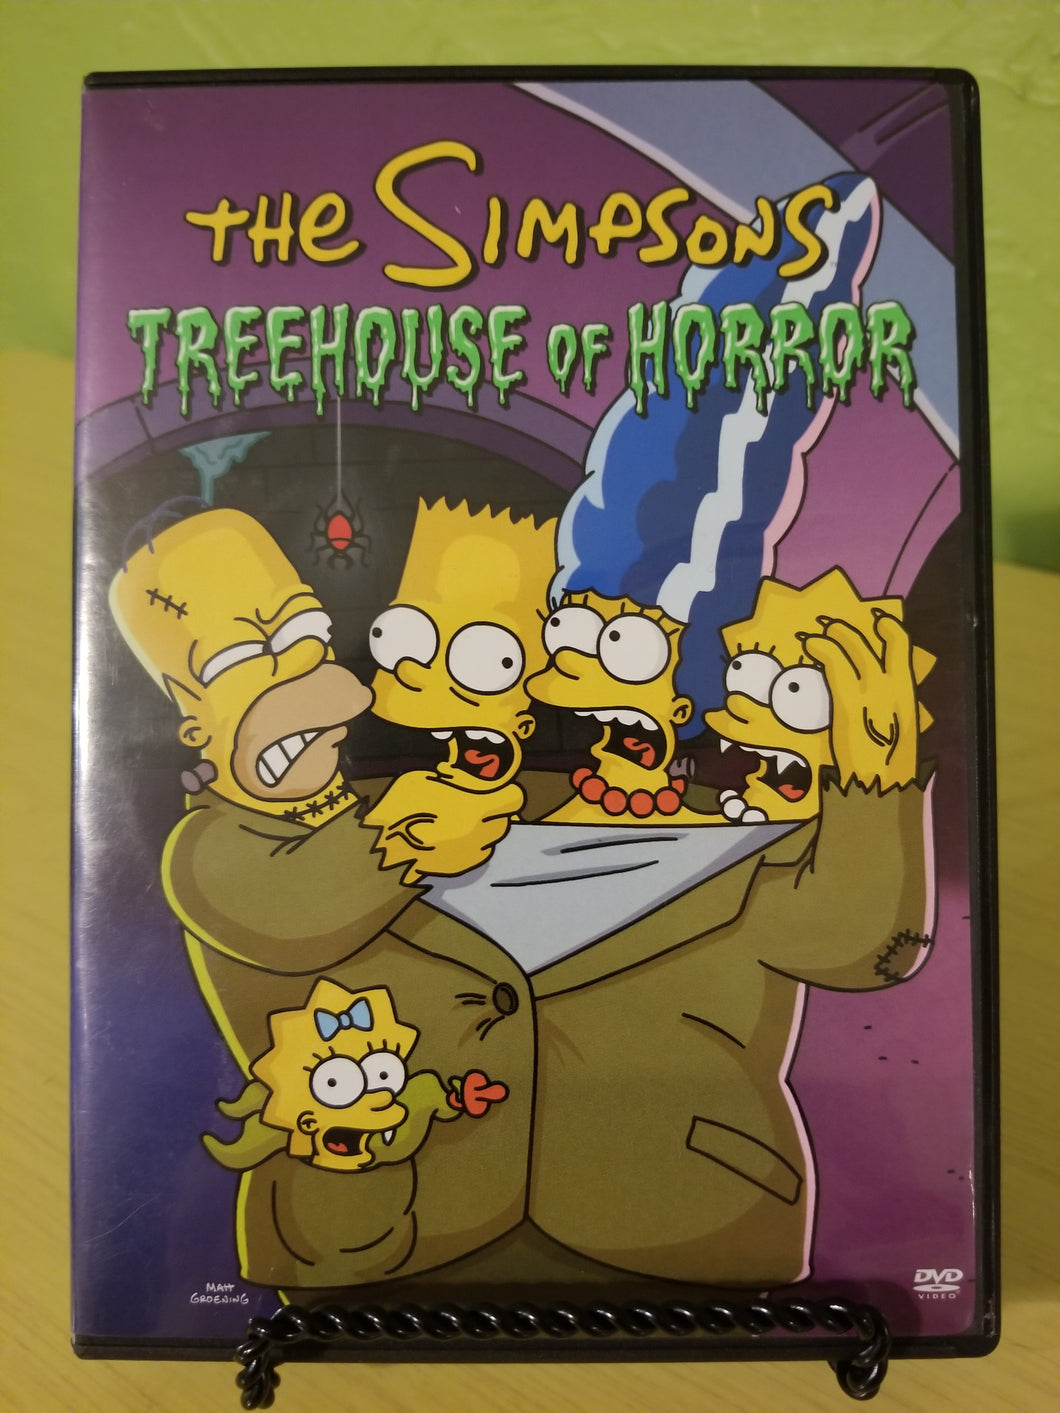 The Simpsons: Treehouse of Horror DVD